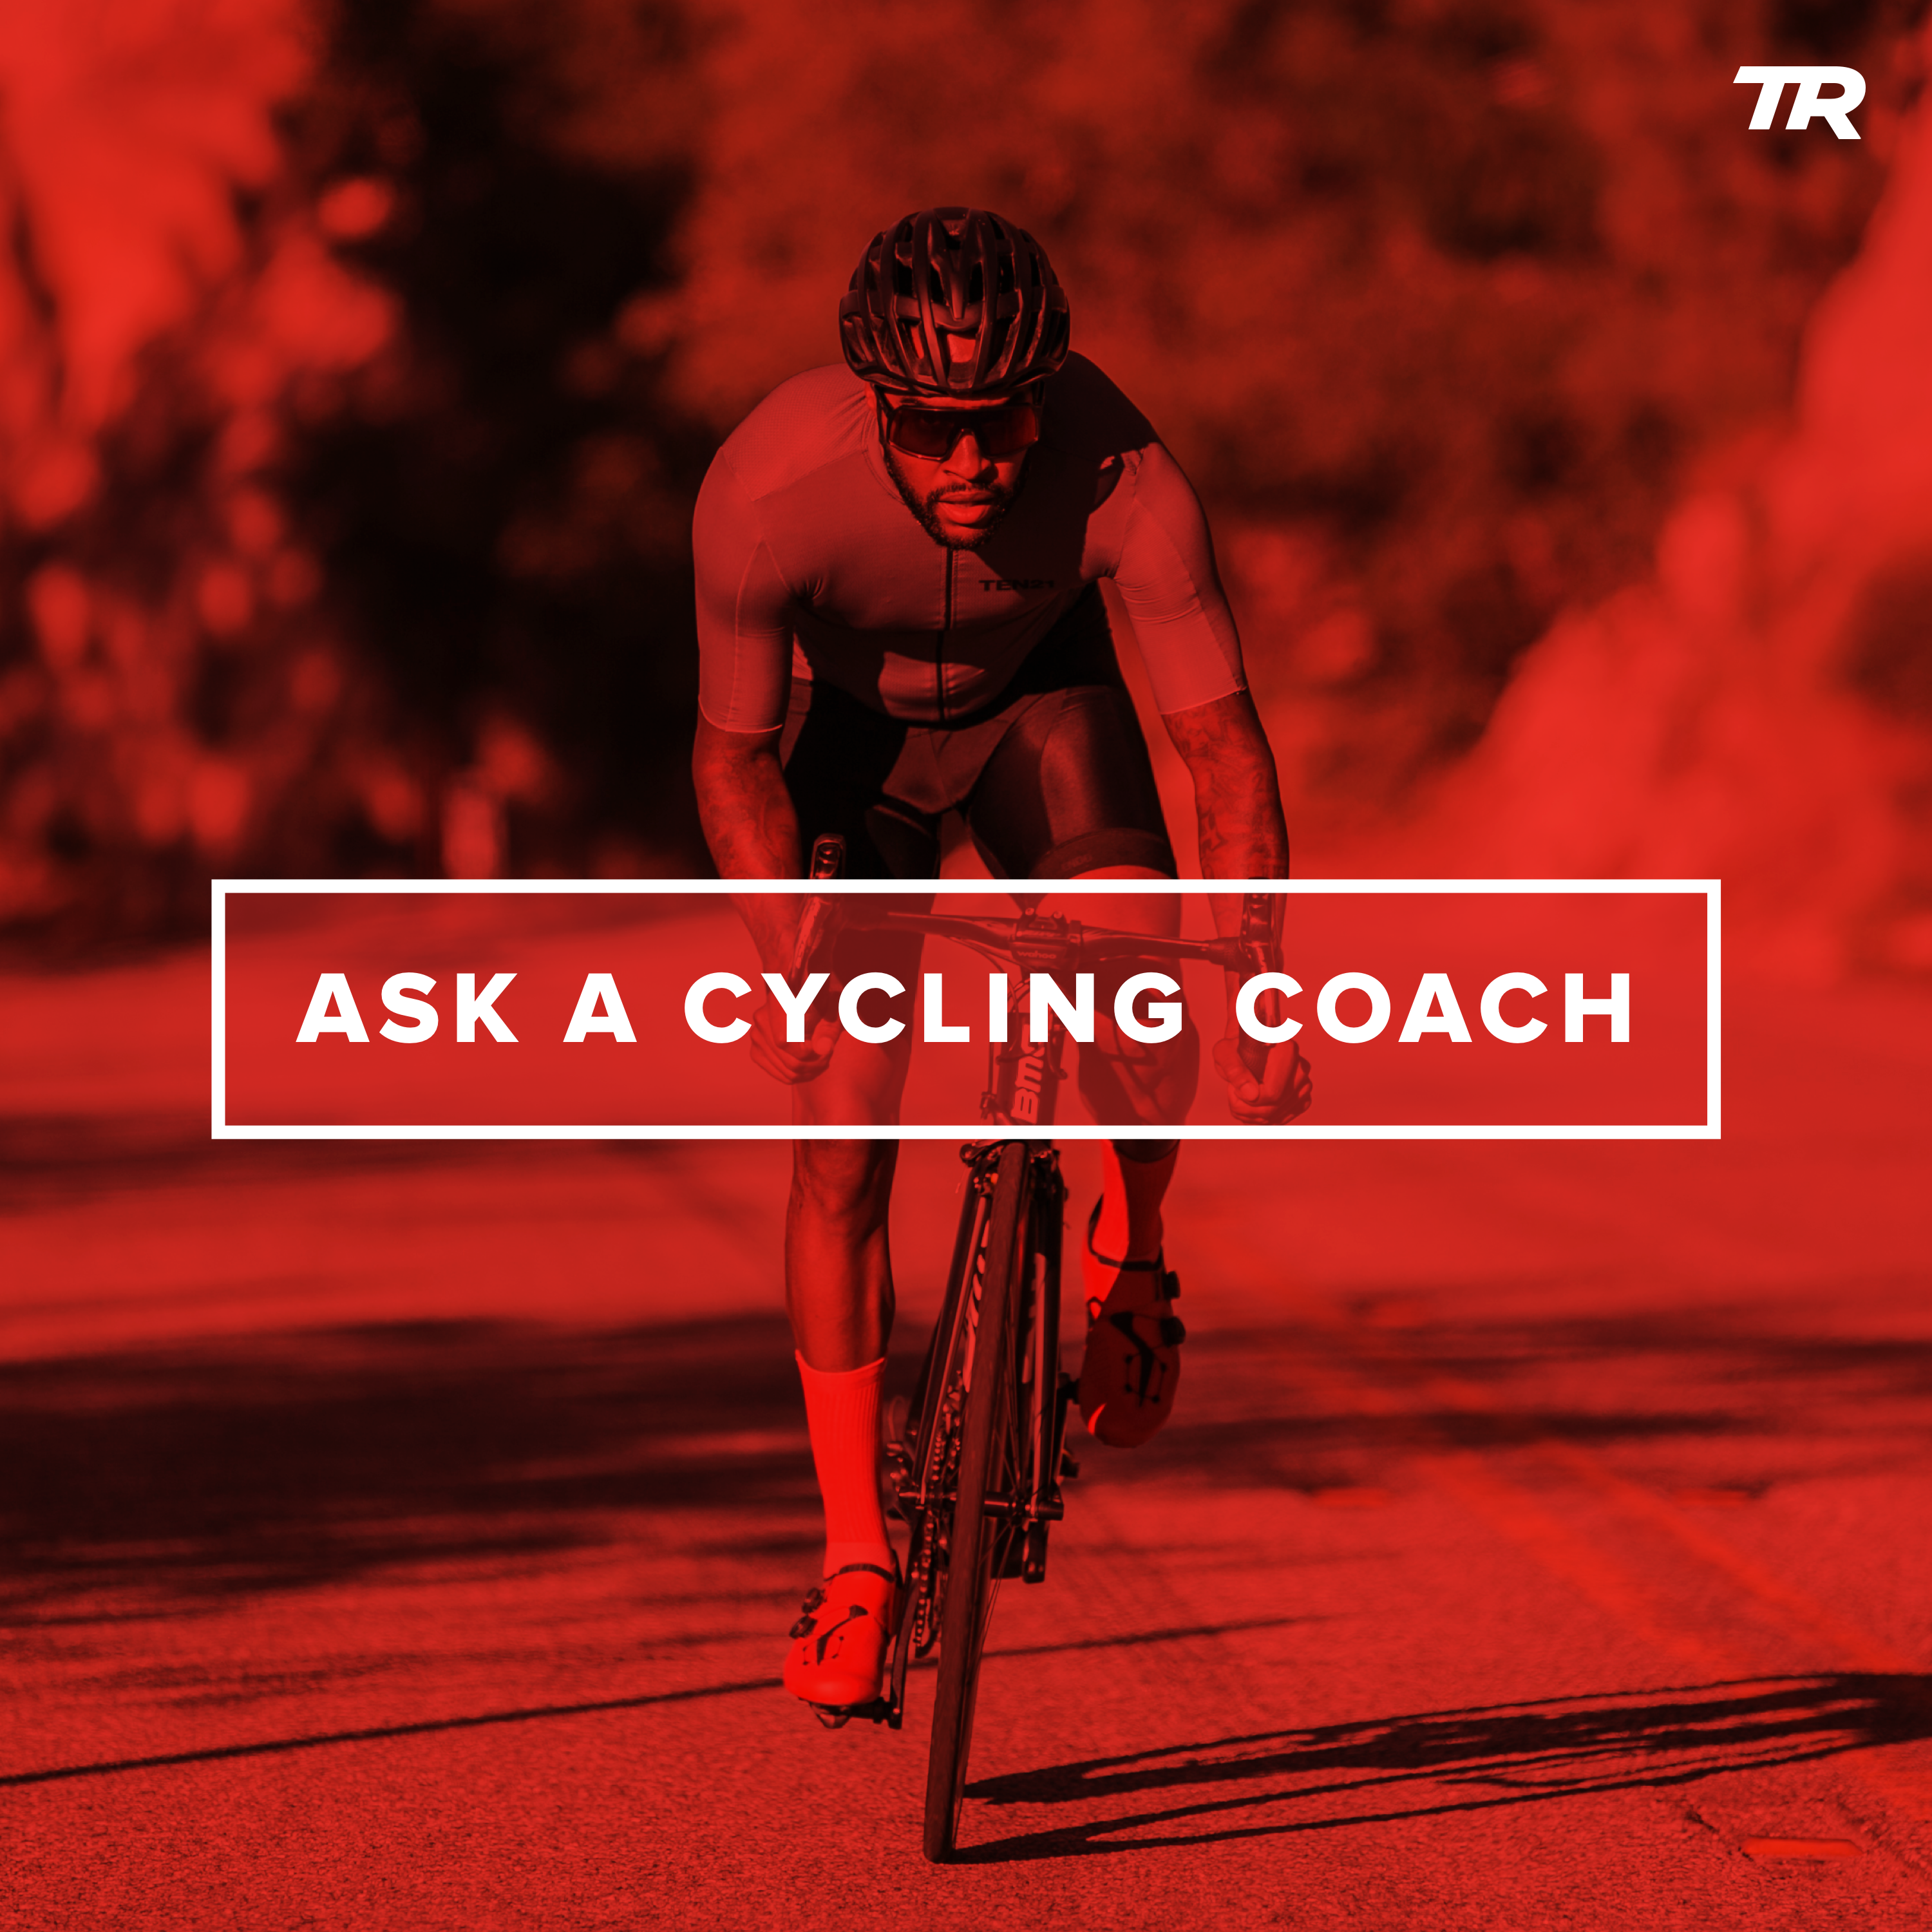 Leadville Champion, Air Quality, Strengths vs. Weaknesses, and More – Ask a Cycling Coach 322